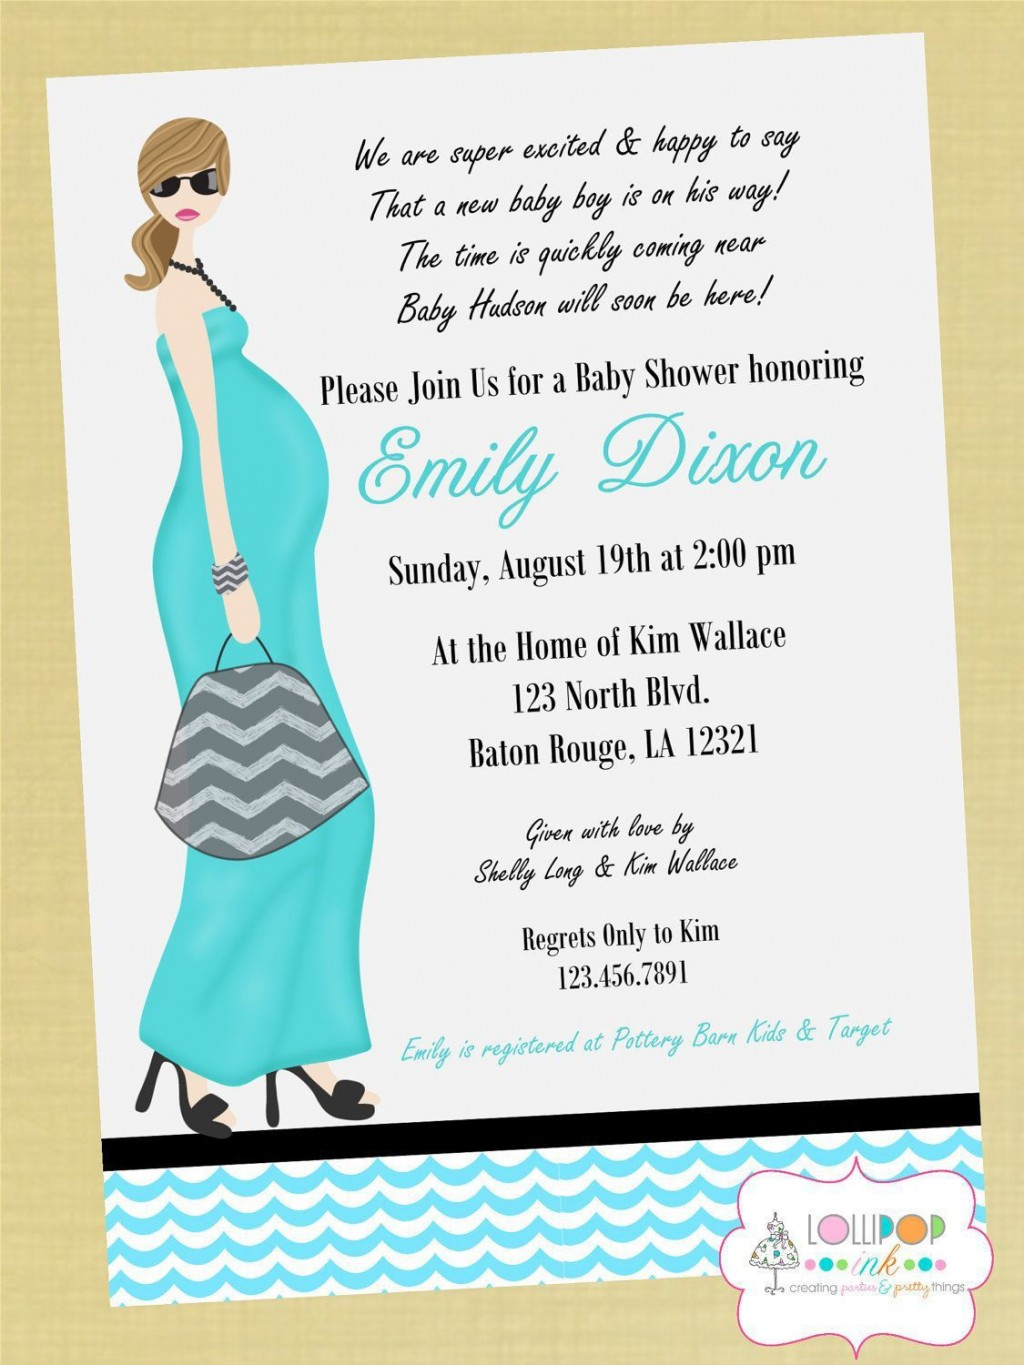 002 Amazing Baby Shower Invitation Wording Example High Resolution  Examples Invite Coed Idea For BoyLarge